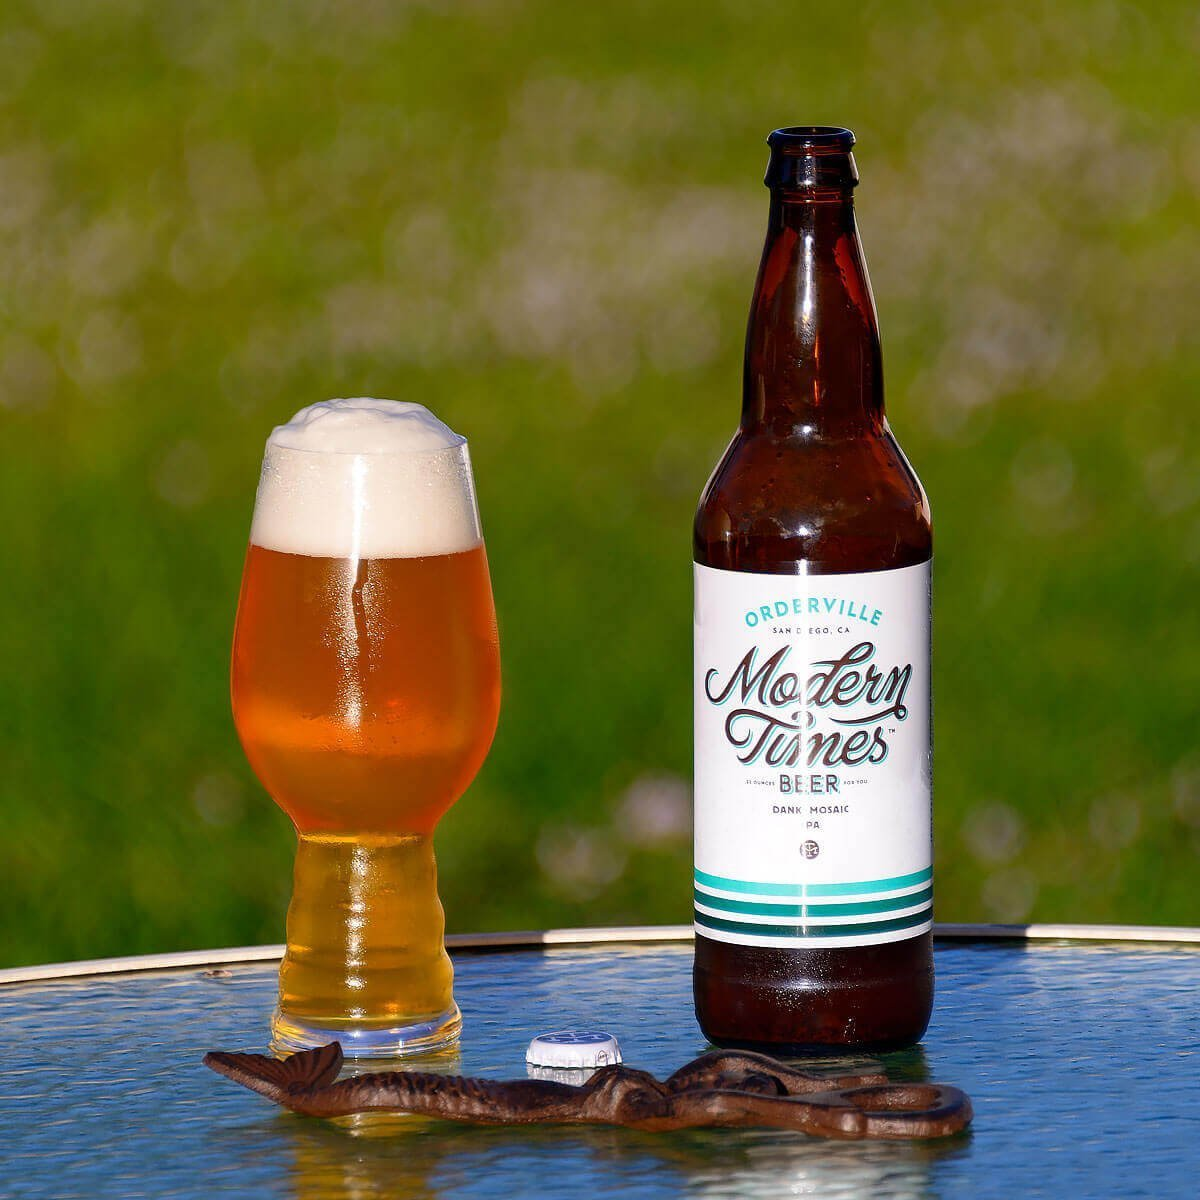 Orderville is an American IPA by Modern Times Beer that packs heaps of dank hops and tropical fruit flavor into a single IPA.